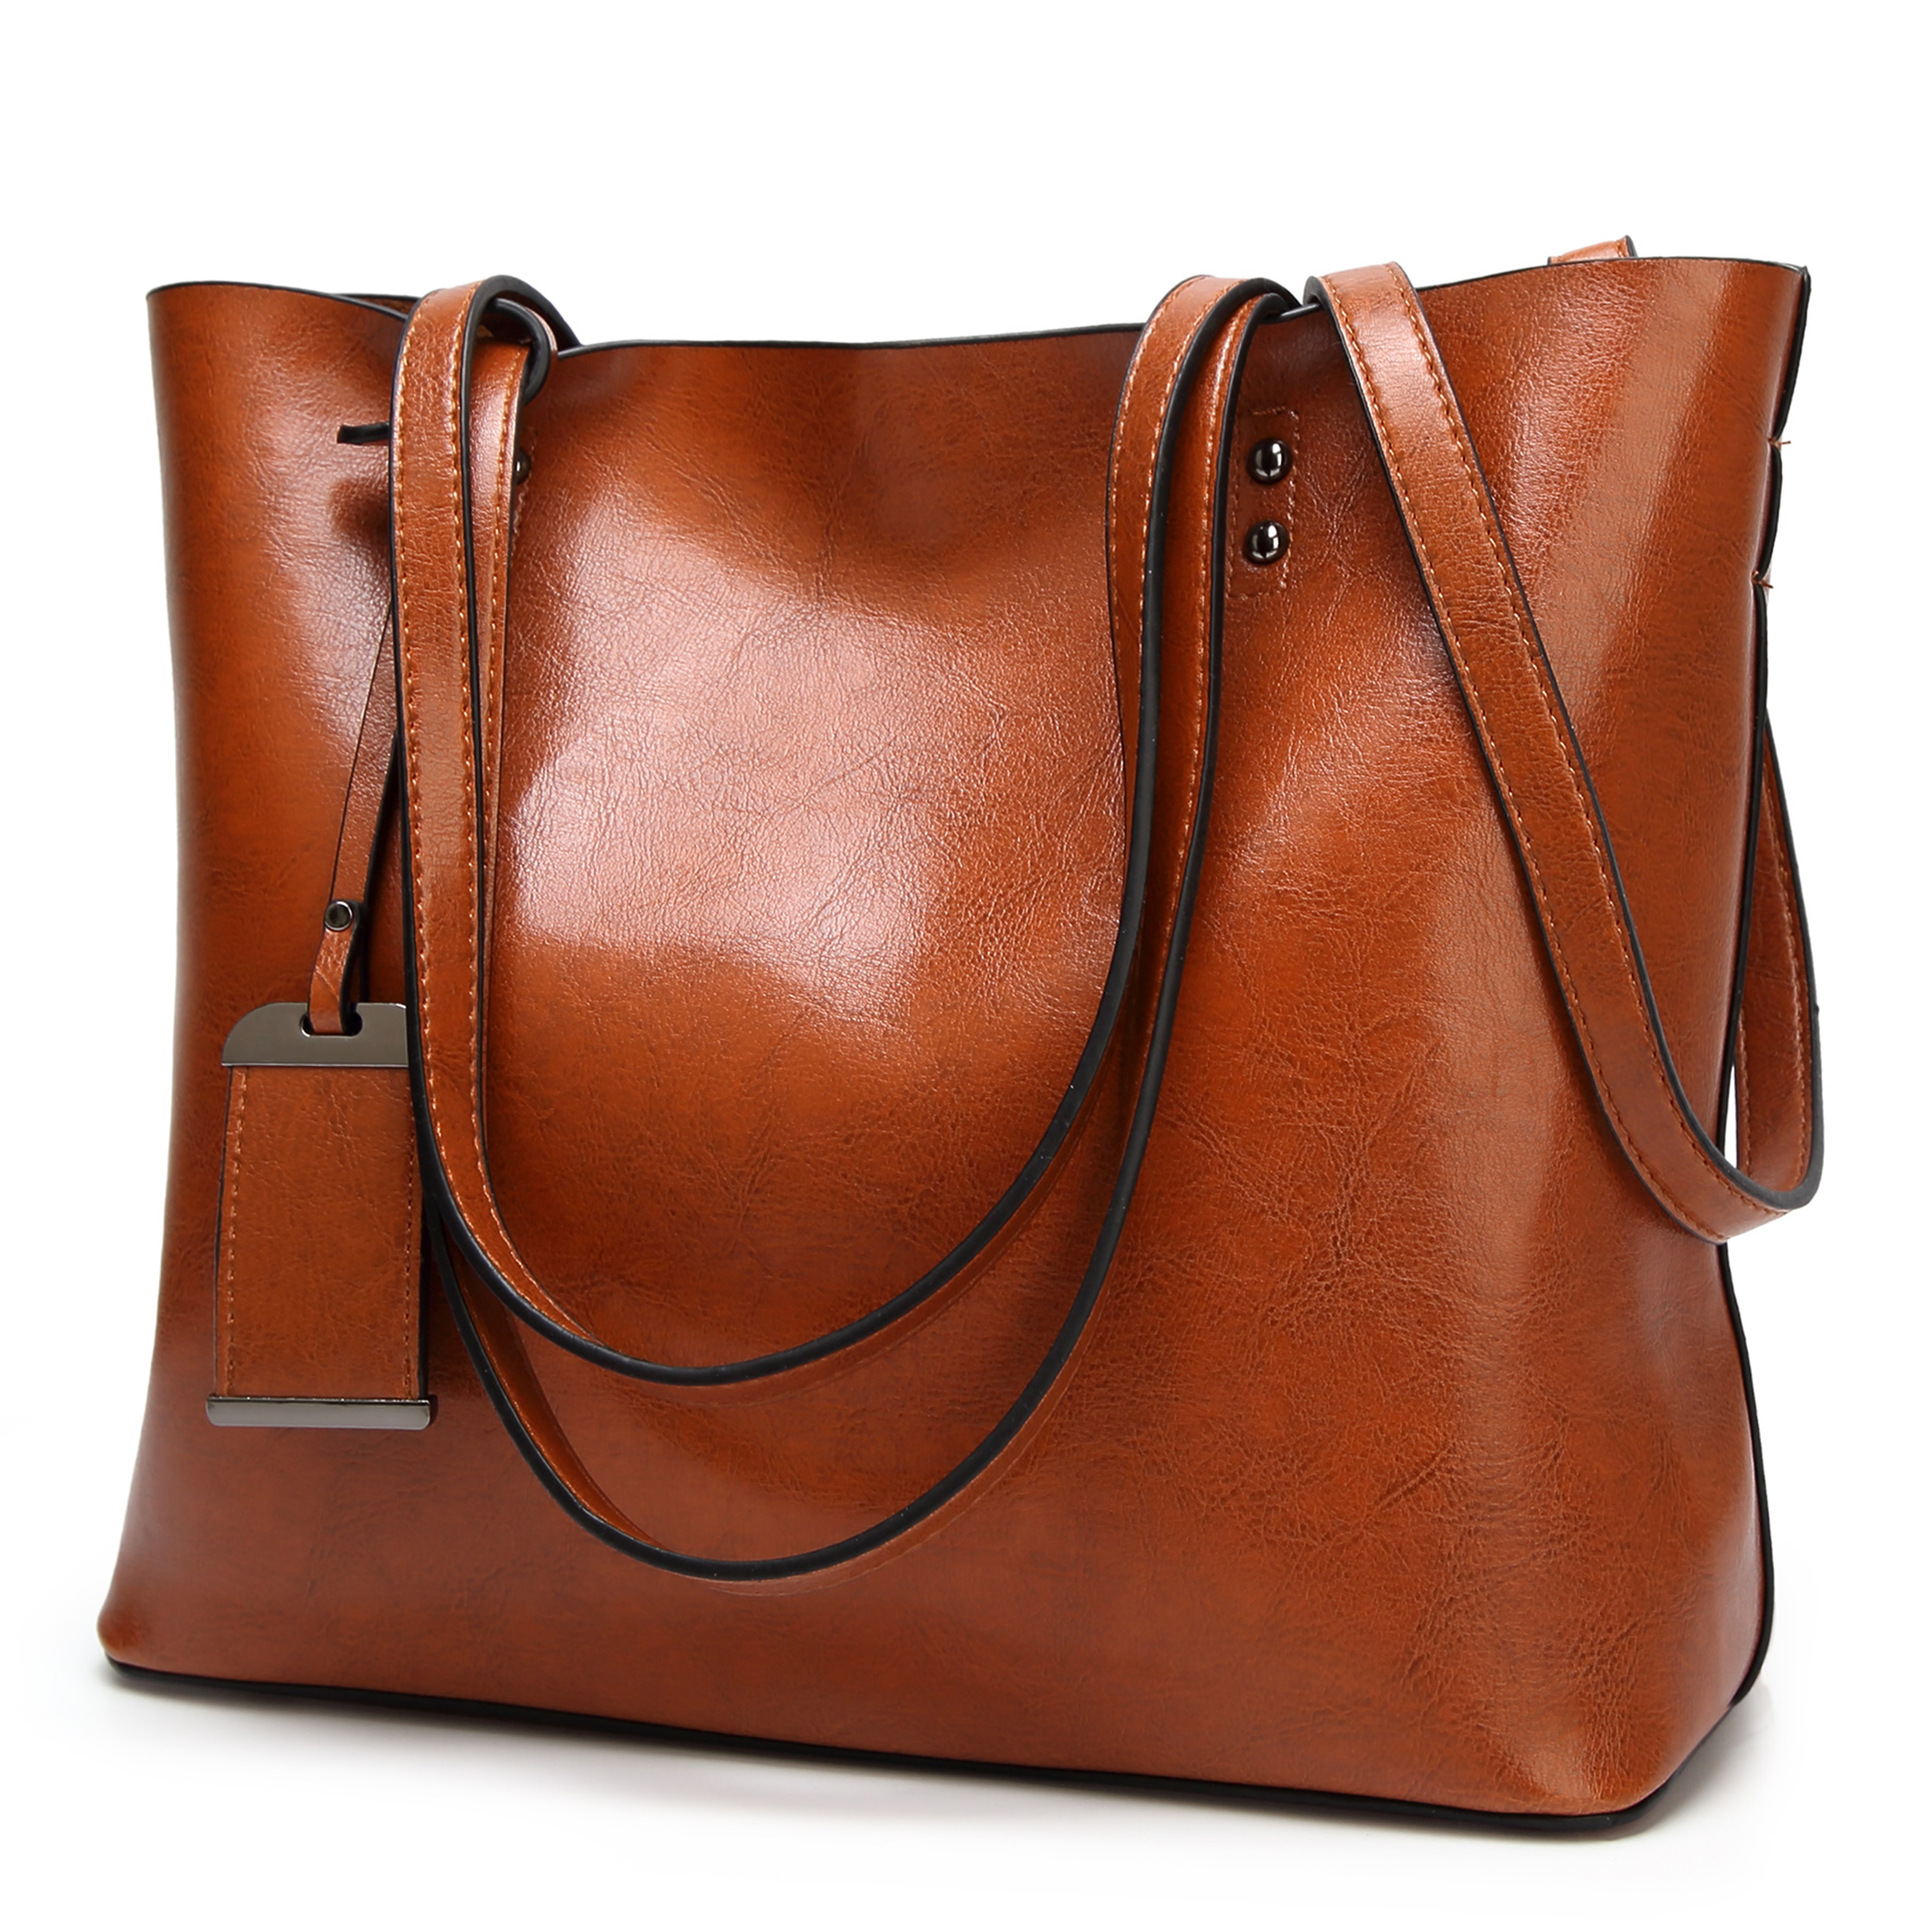 Retro Tote Bag 2020 new womens bag European and American Leather Bag Fashion Handbag Single Shoulder Messenger Bag Handbag